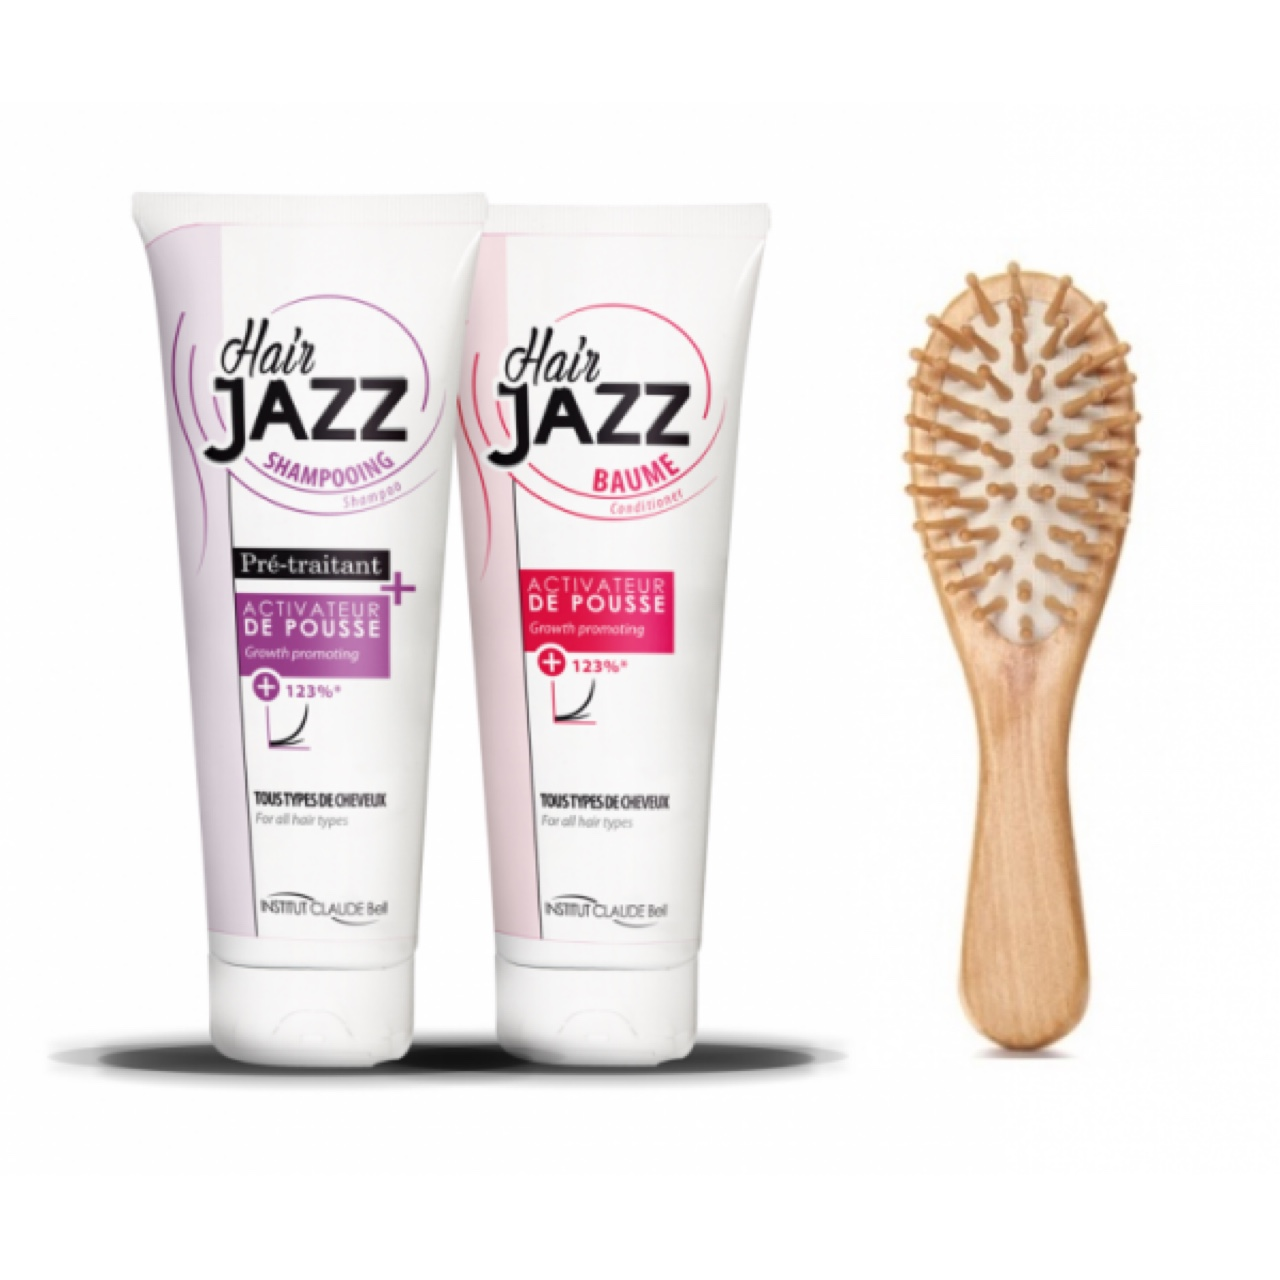 Hair Jazz Shampoo And Conditioner With Wooden Brush Depop